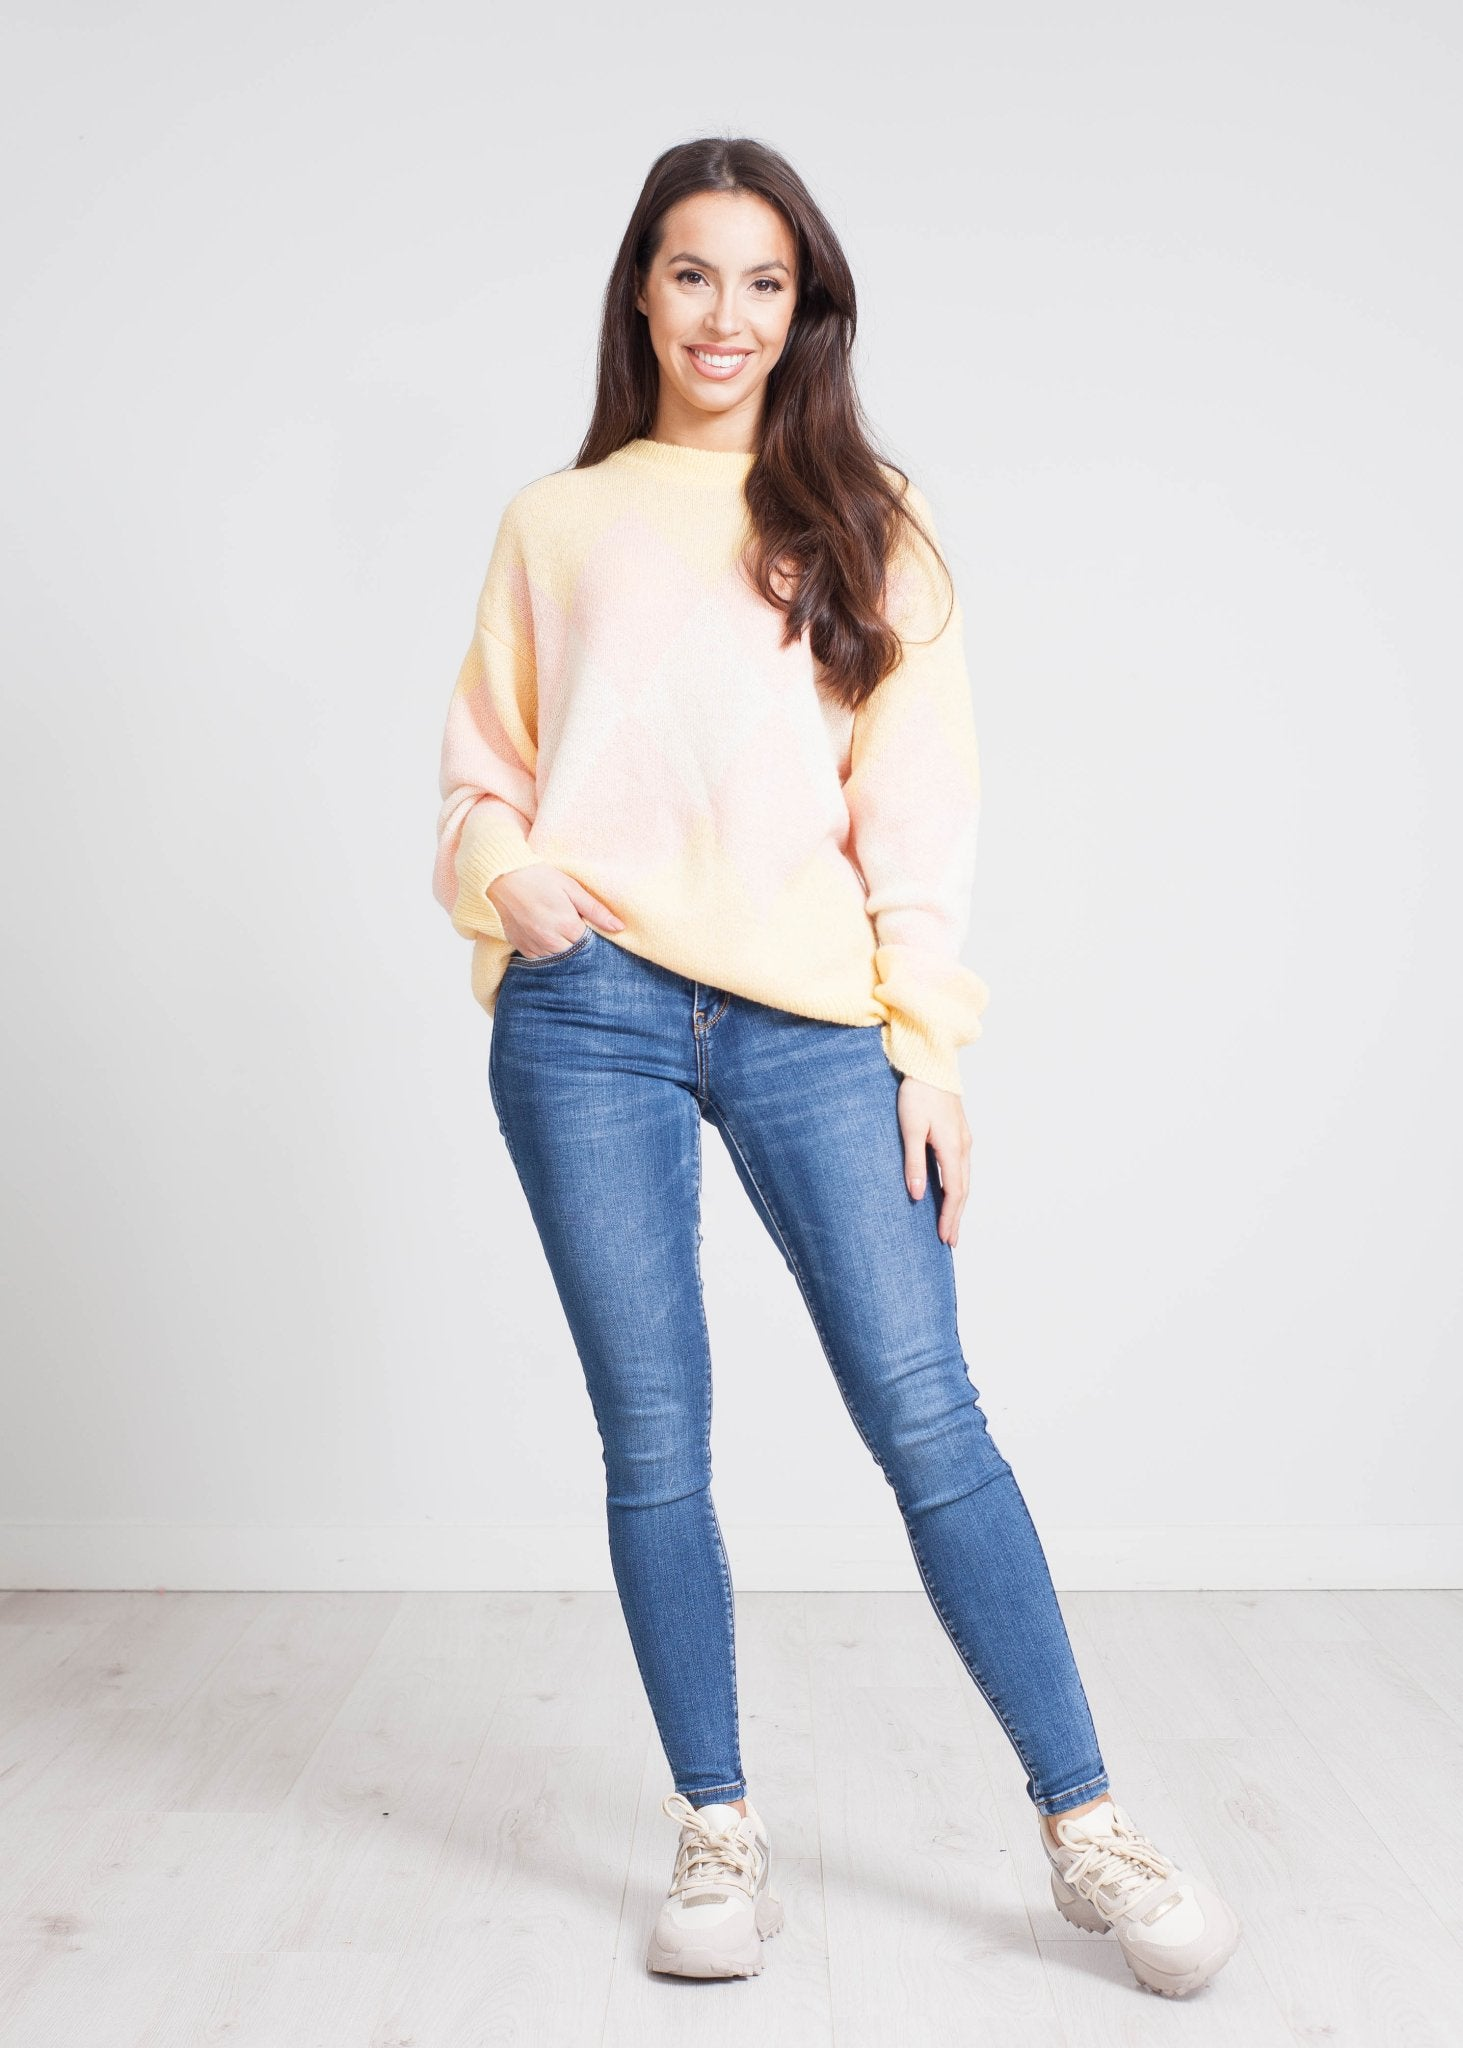 Elsa Diamond Knit Jumper In Lemon Mix - The Walk in Wardrobe